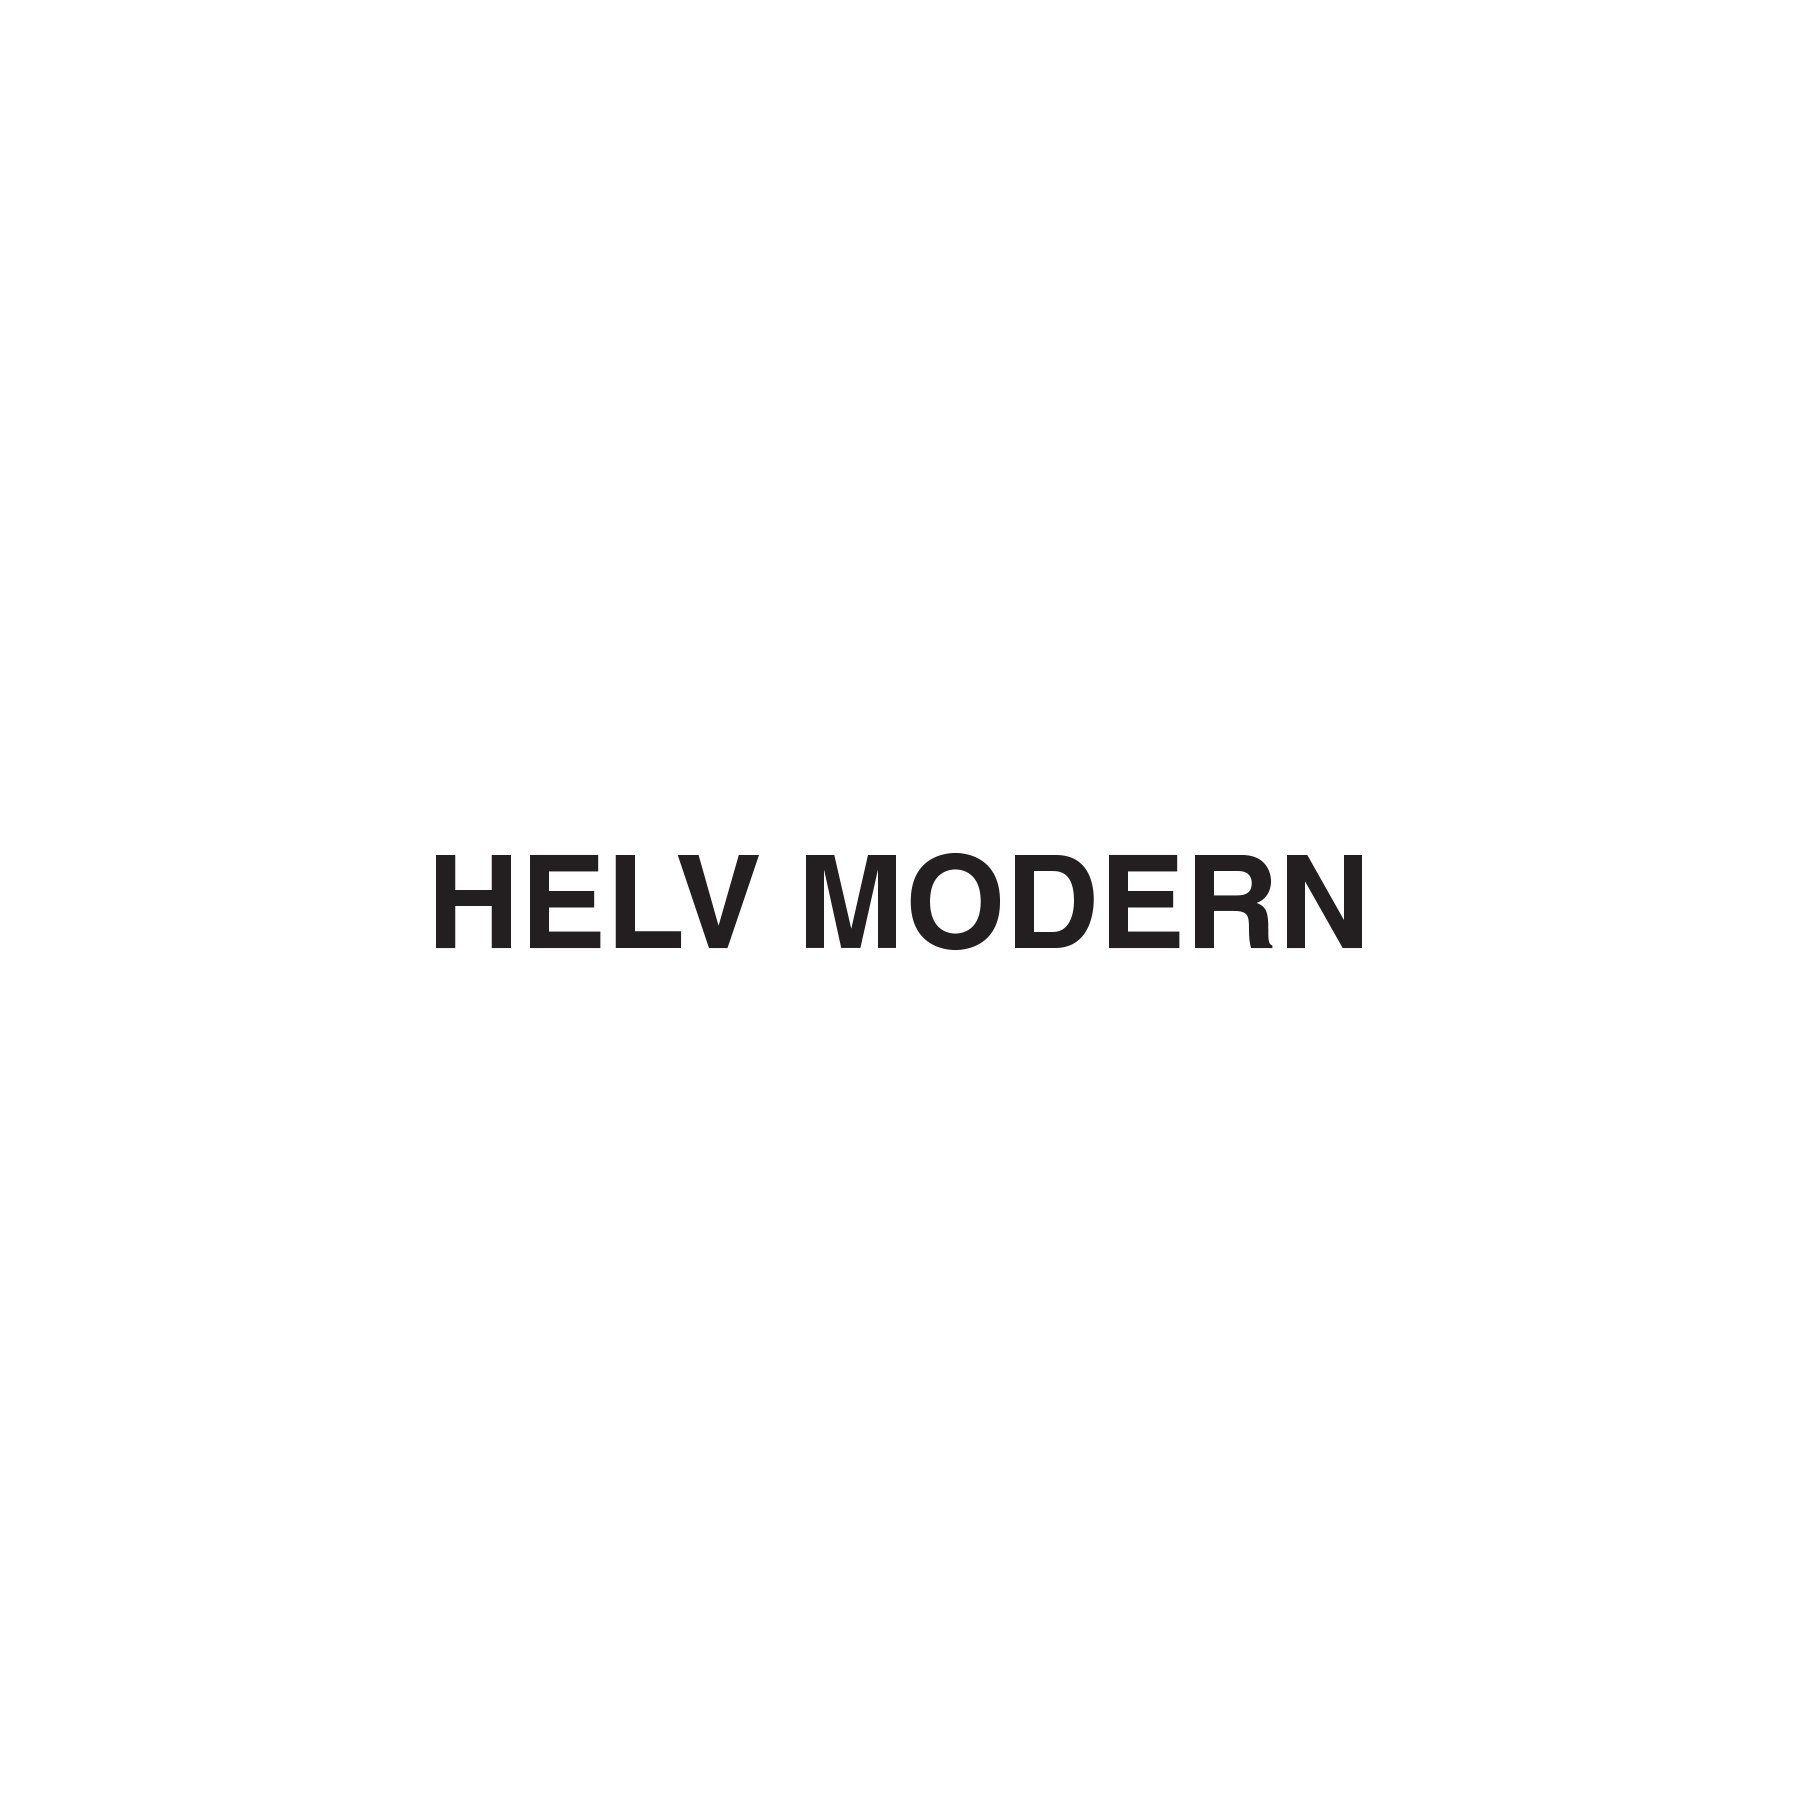 Helv Modern Font Option Budget Logo Express by Brand G Creative 07 OCTOBER 2017.jpg